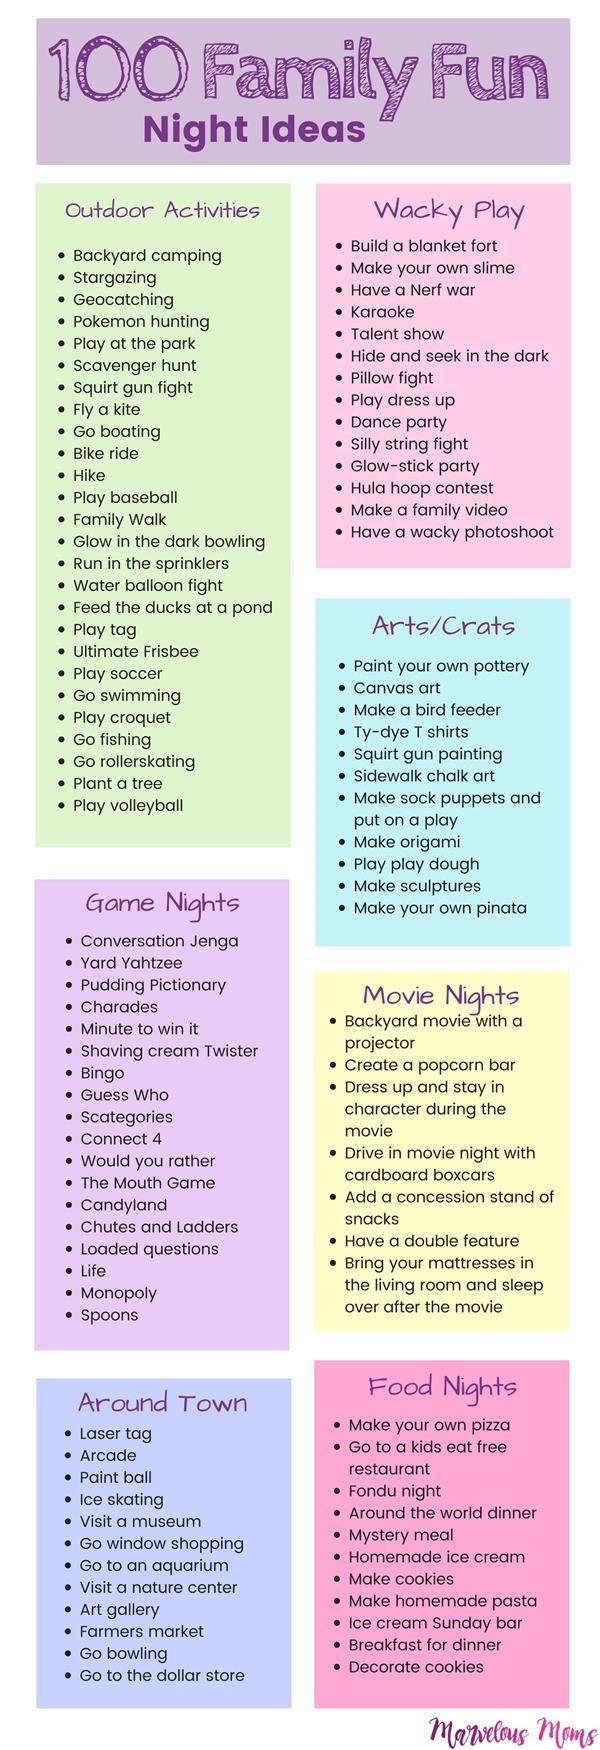 100 Family Fun Night Ideas